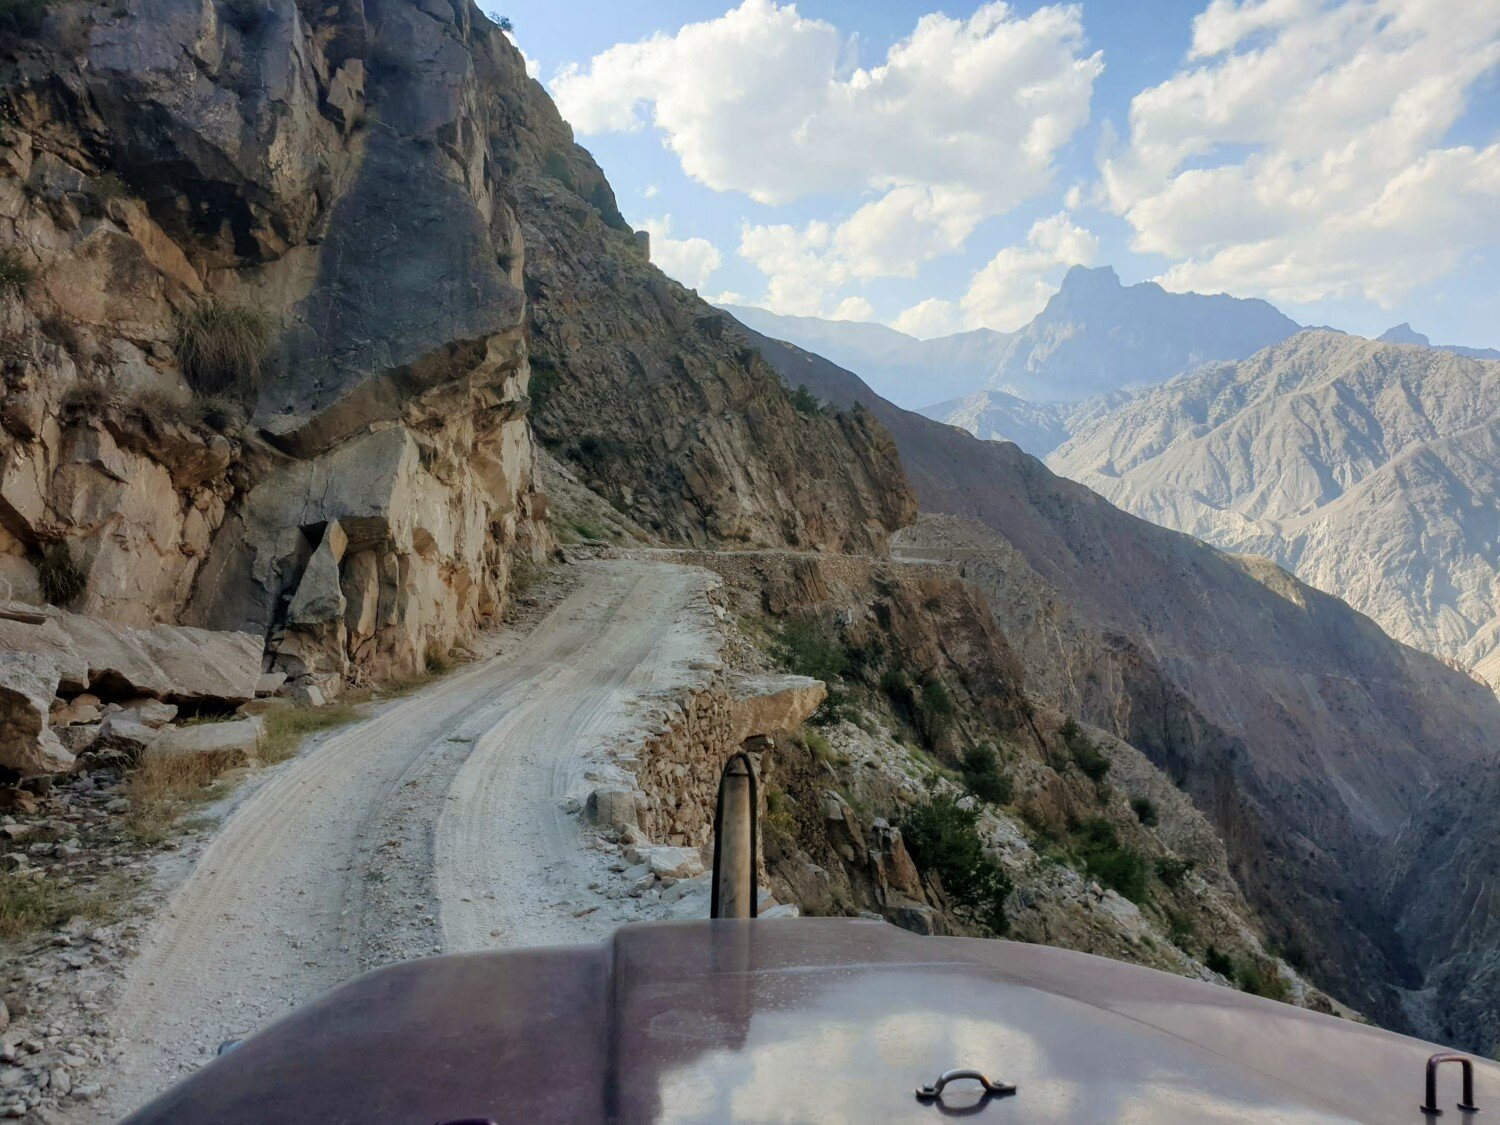 The road to Fairy Meadows is pretty narrow, especially when it comes time for two vehicles to pass in opposite directions!